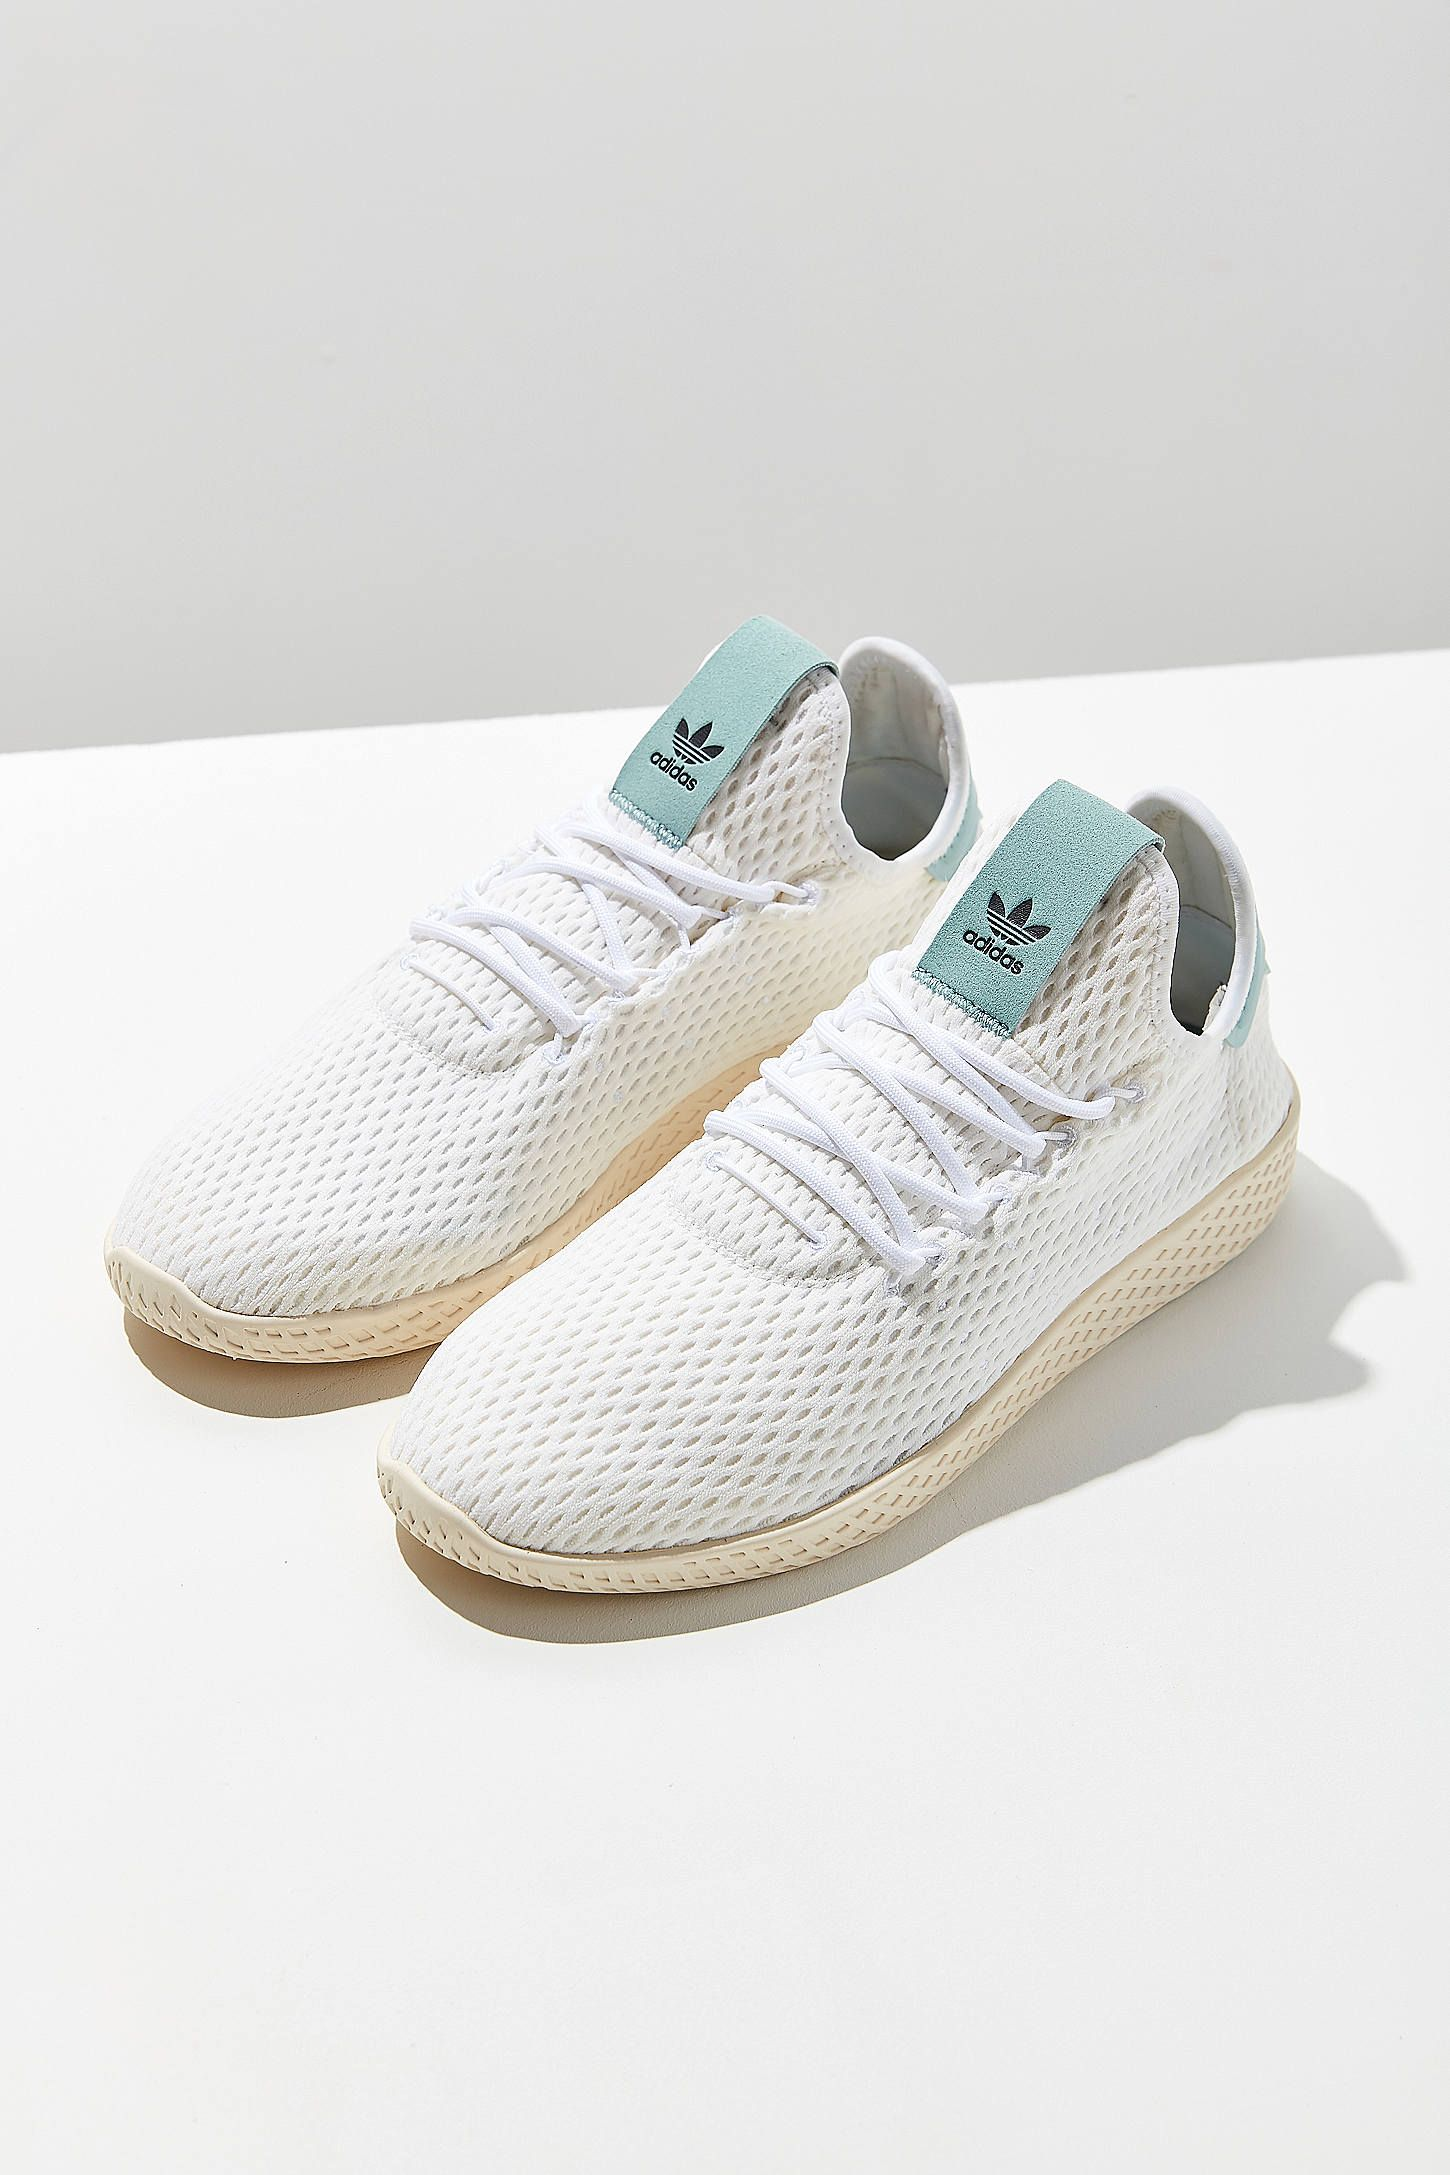 0fd610a83 Shop adidas Originals X Pharrell Williams Tennis Hu Sneaker at Urban  Outfitters today. We carry all the latest styles